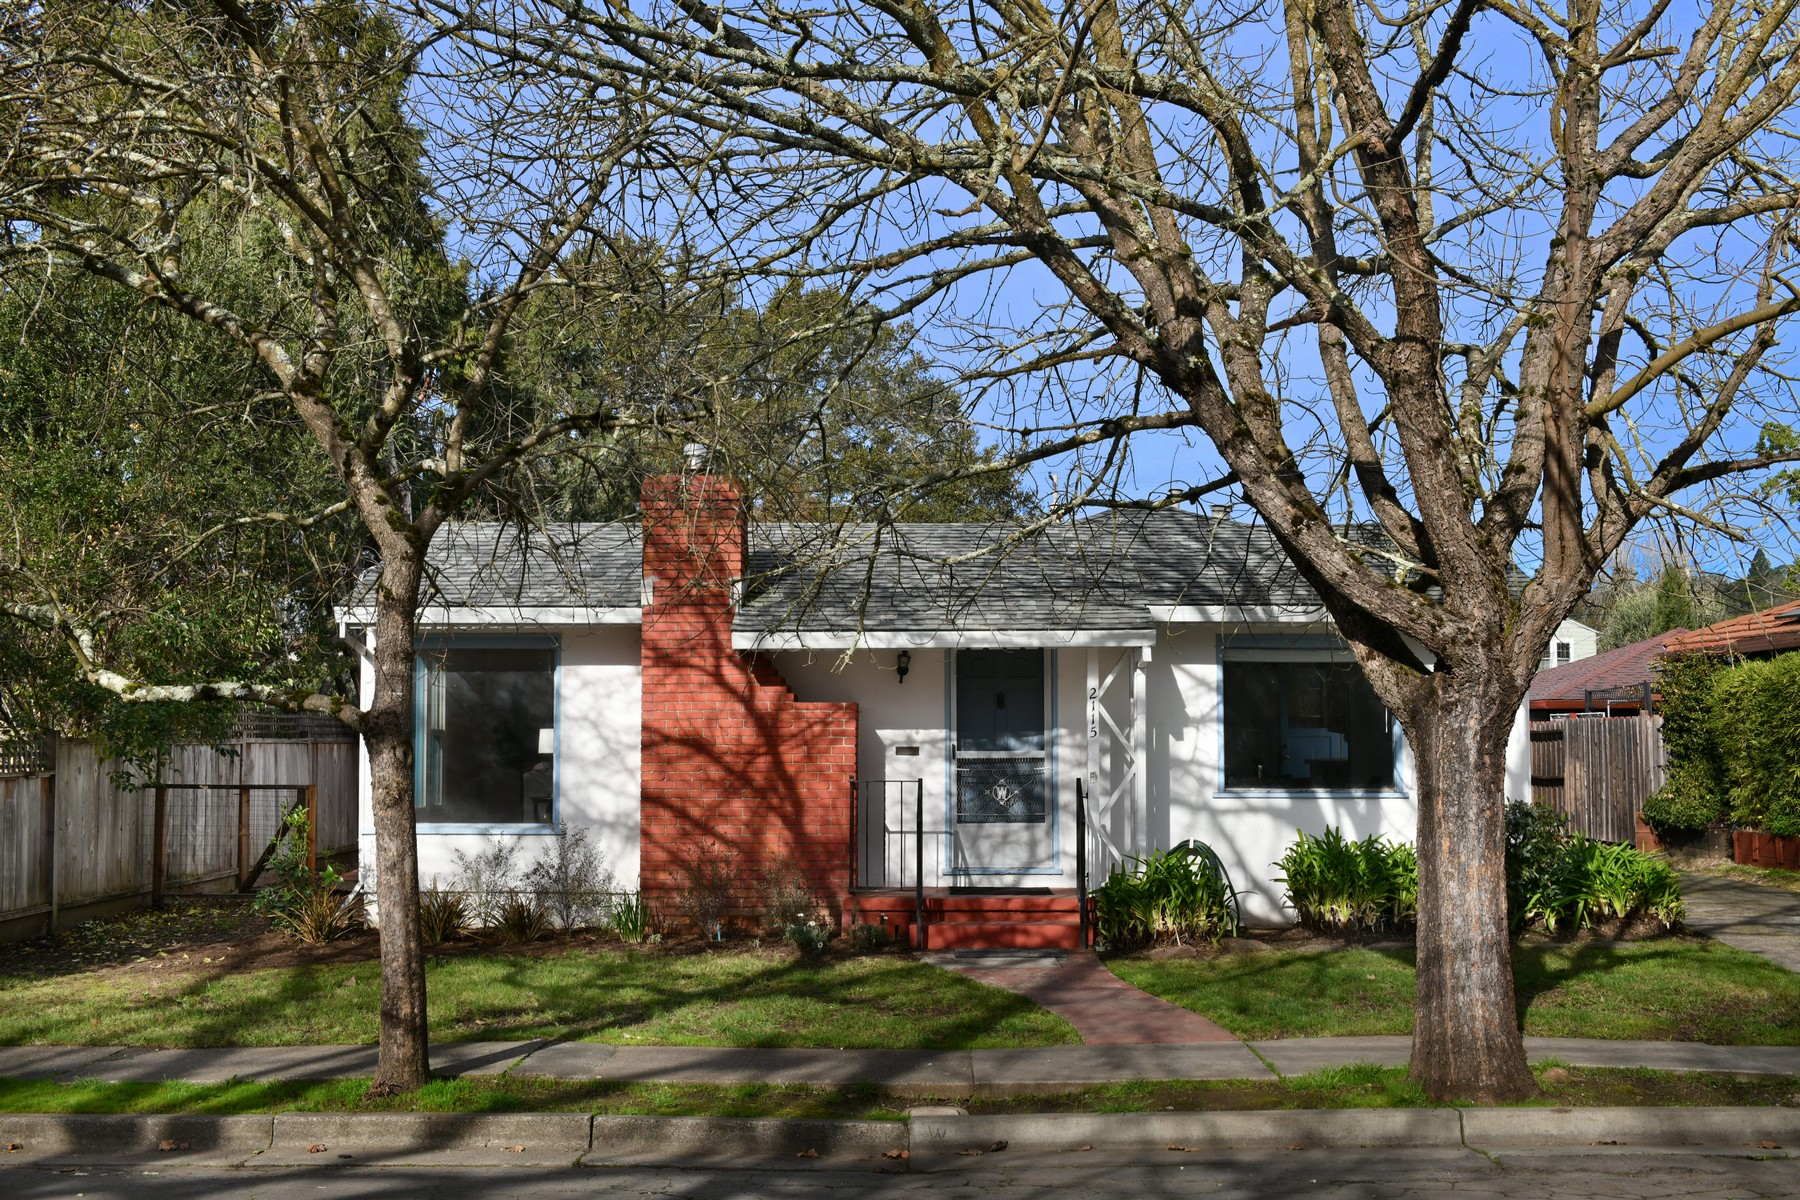 Single Family Homes for Sale at Light & Bright Vintage Bungalow 2115 E. Haven Drive Santa Rosa, California 95404 United States